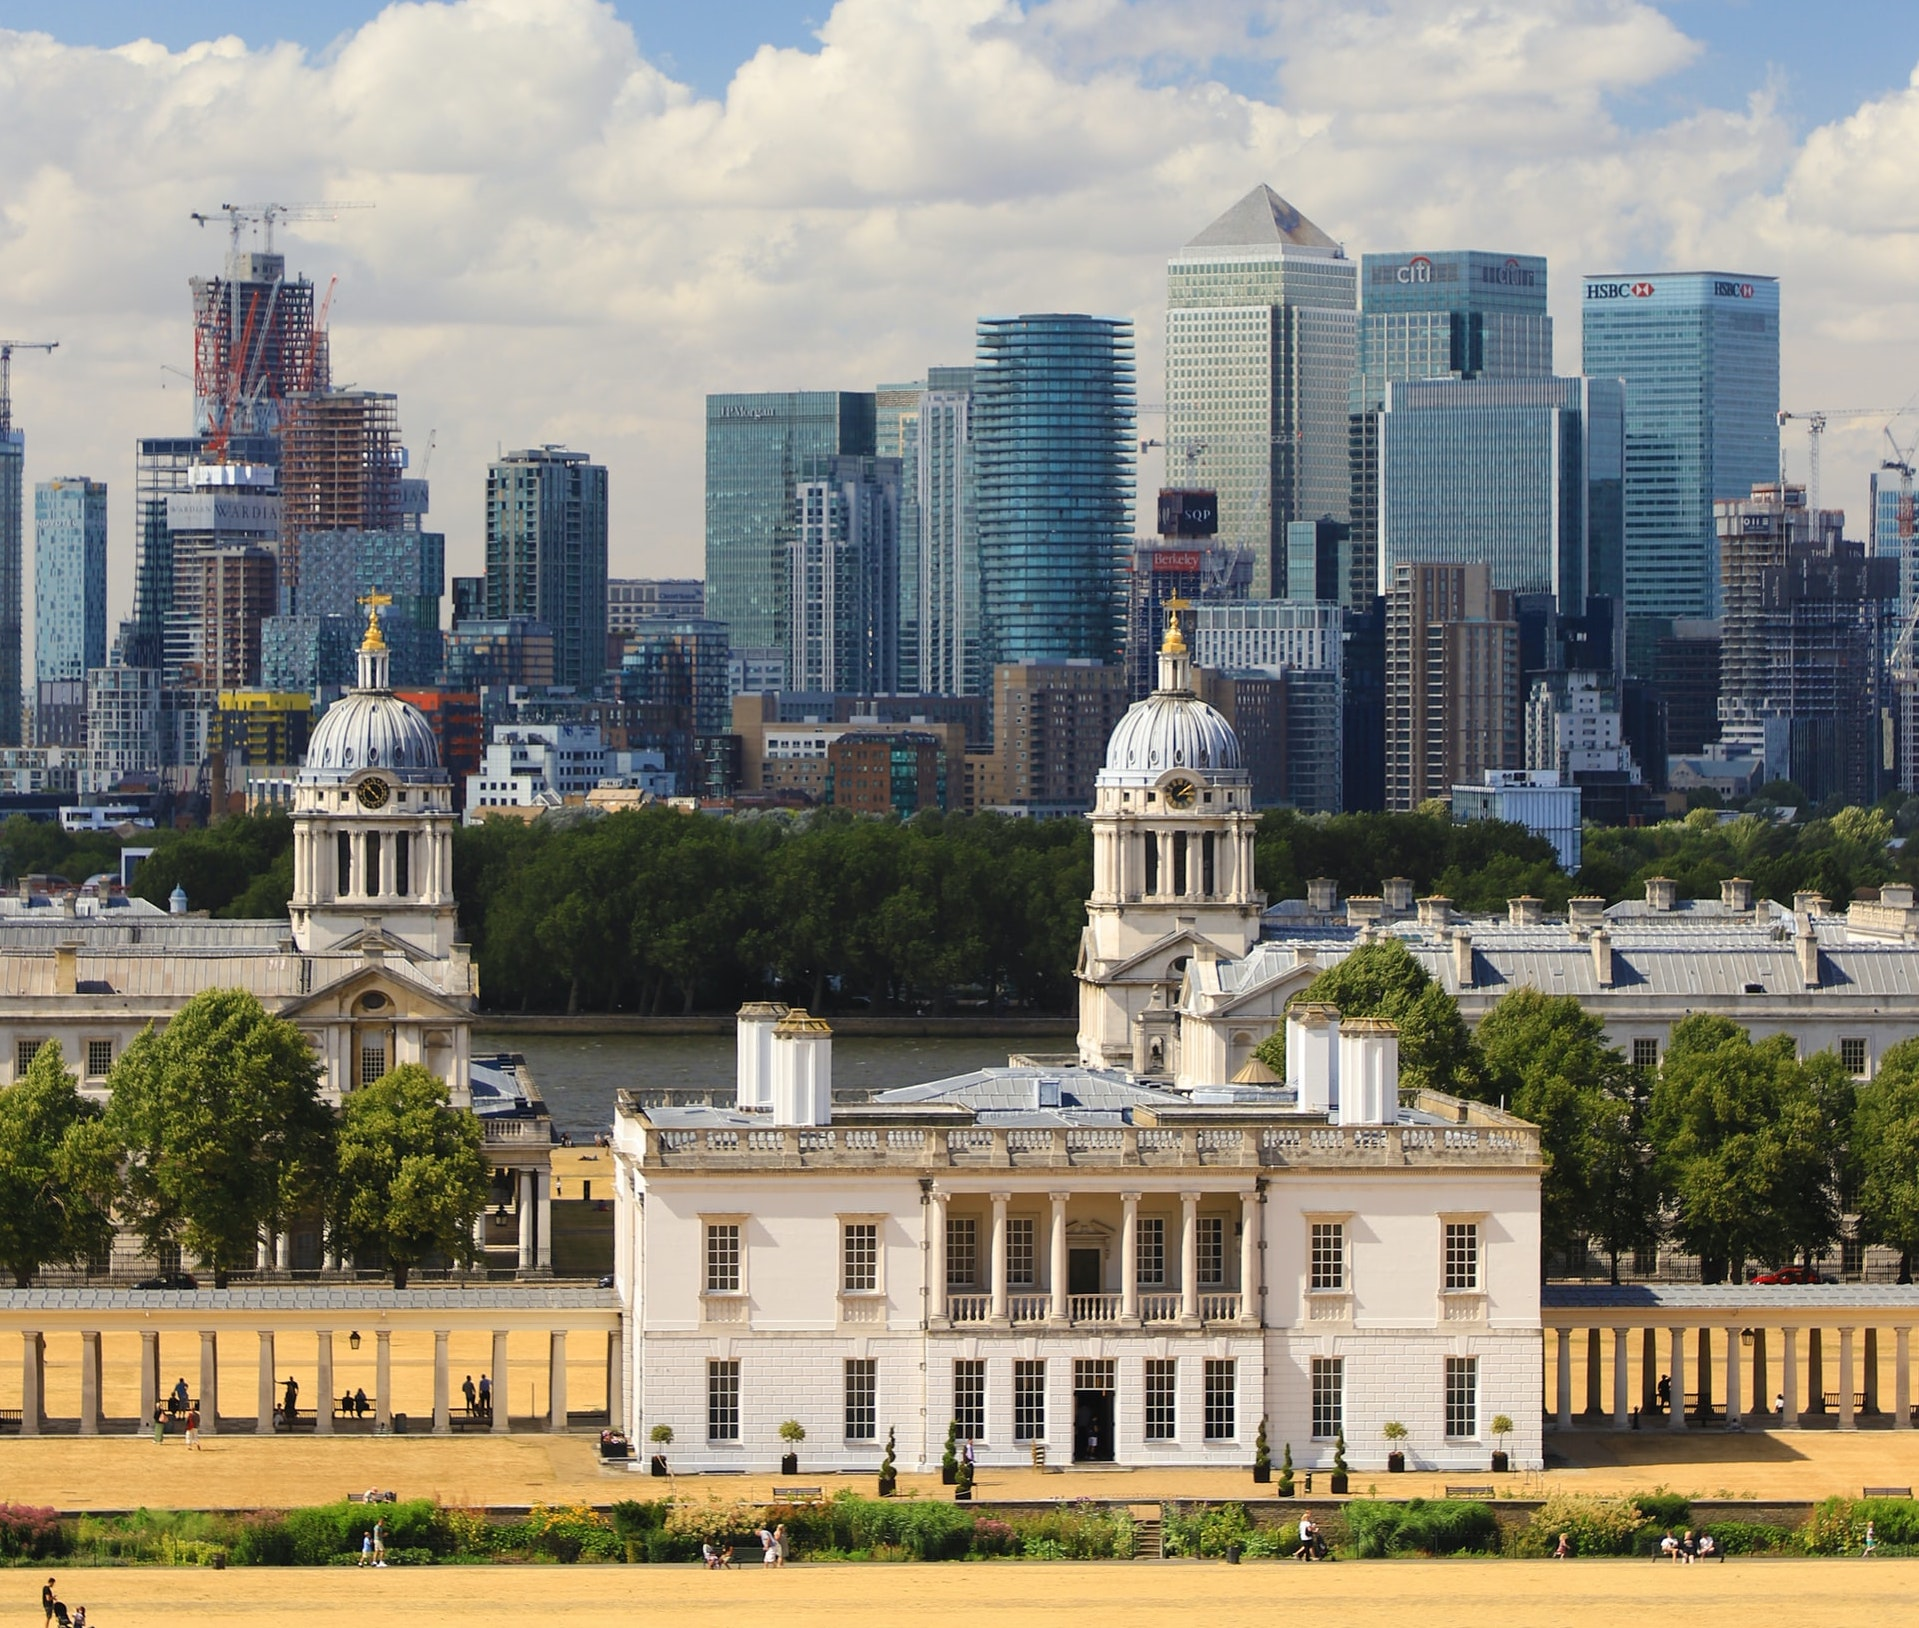 An image of Greenwich university and canary wharf in the background